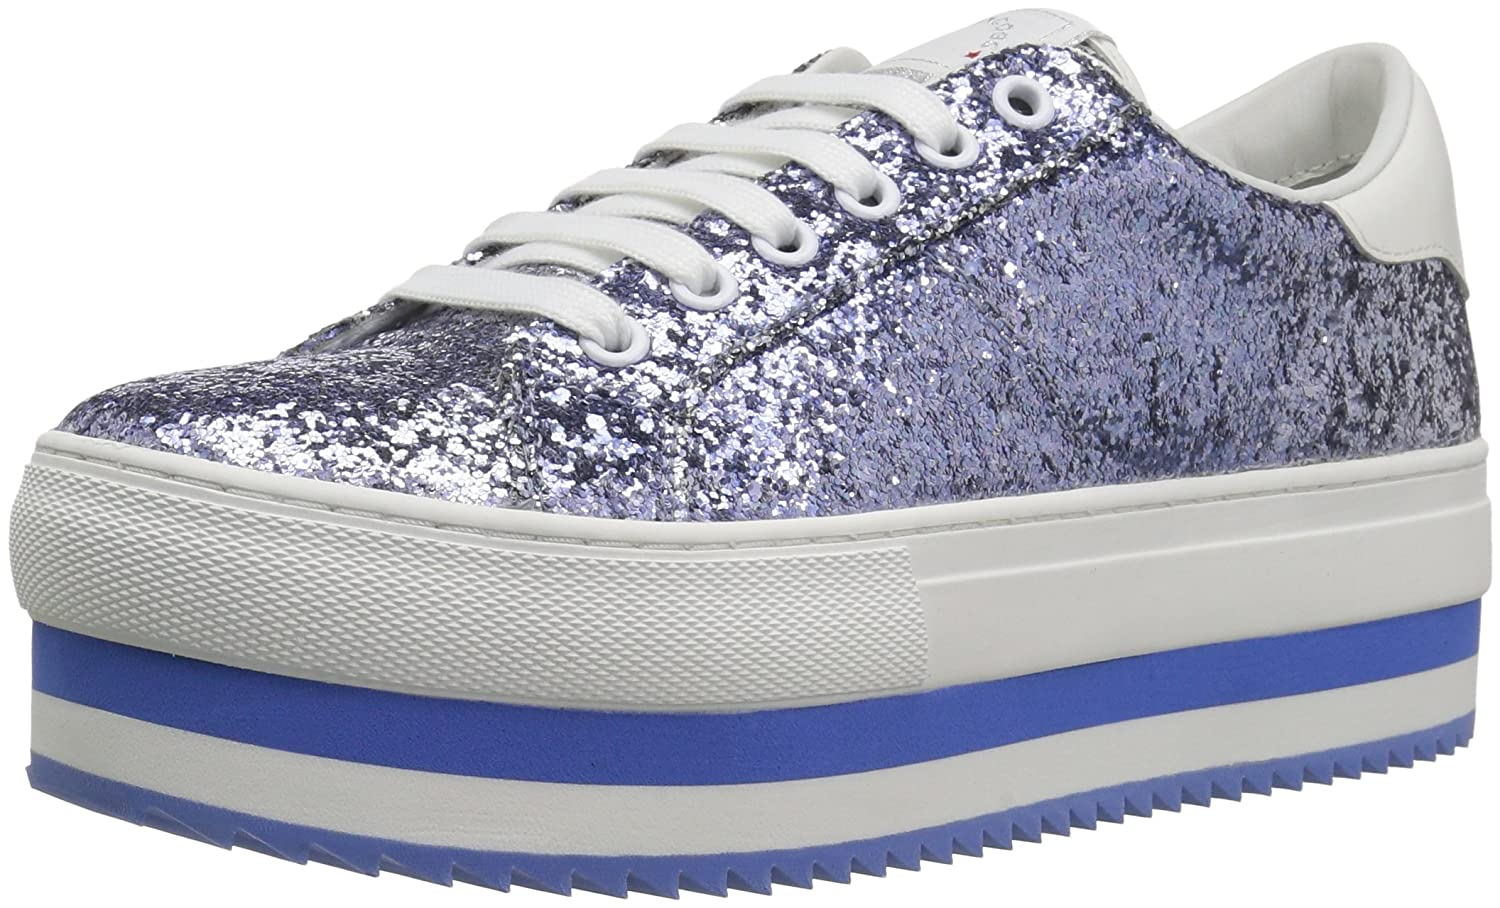 Blue Multi Marc Jacobs Grand Platform Sneakers Original Packing